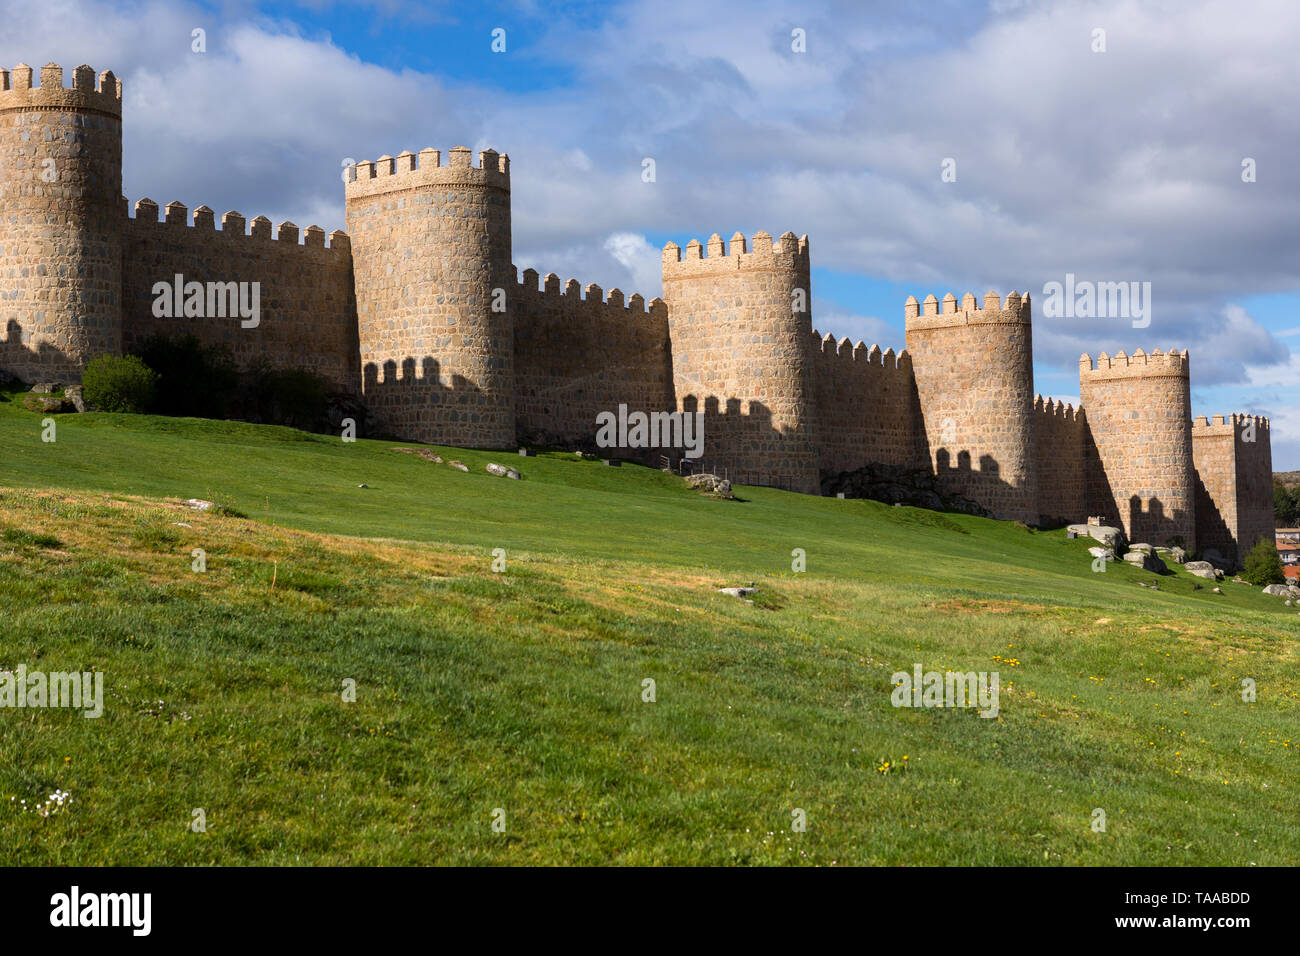 Ancient fortification of Avila, Castile and Leon, Spain - Stock Image